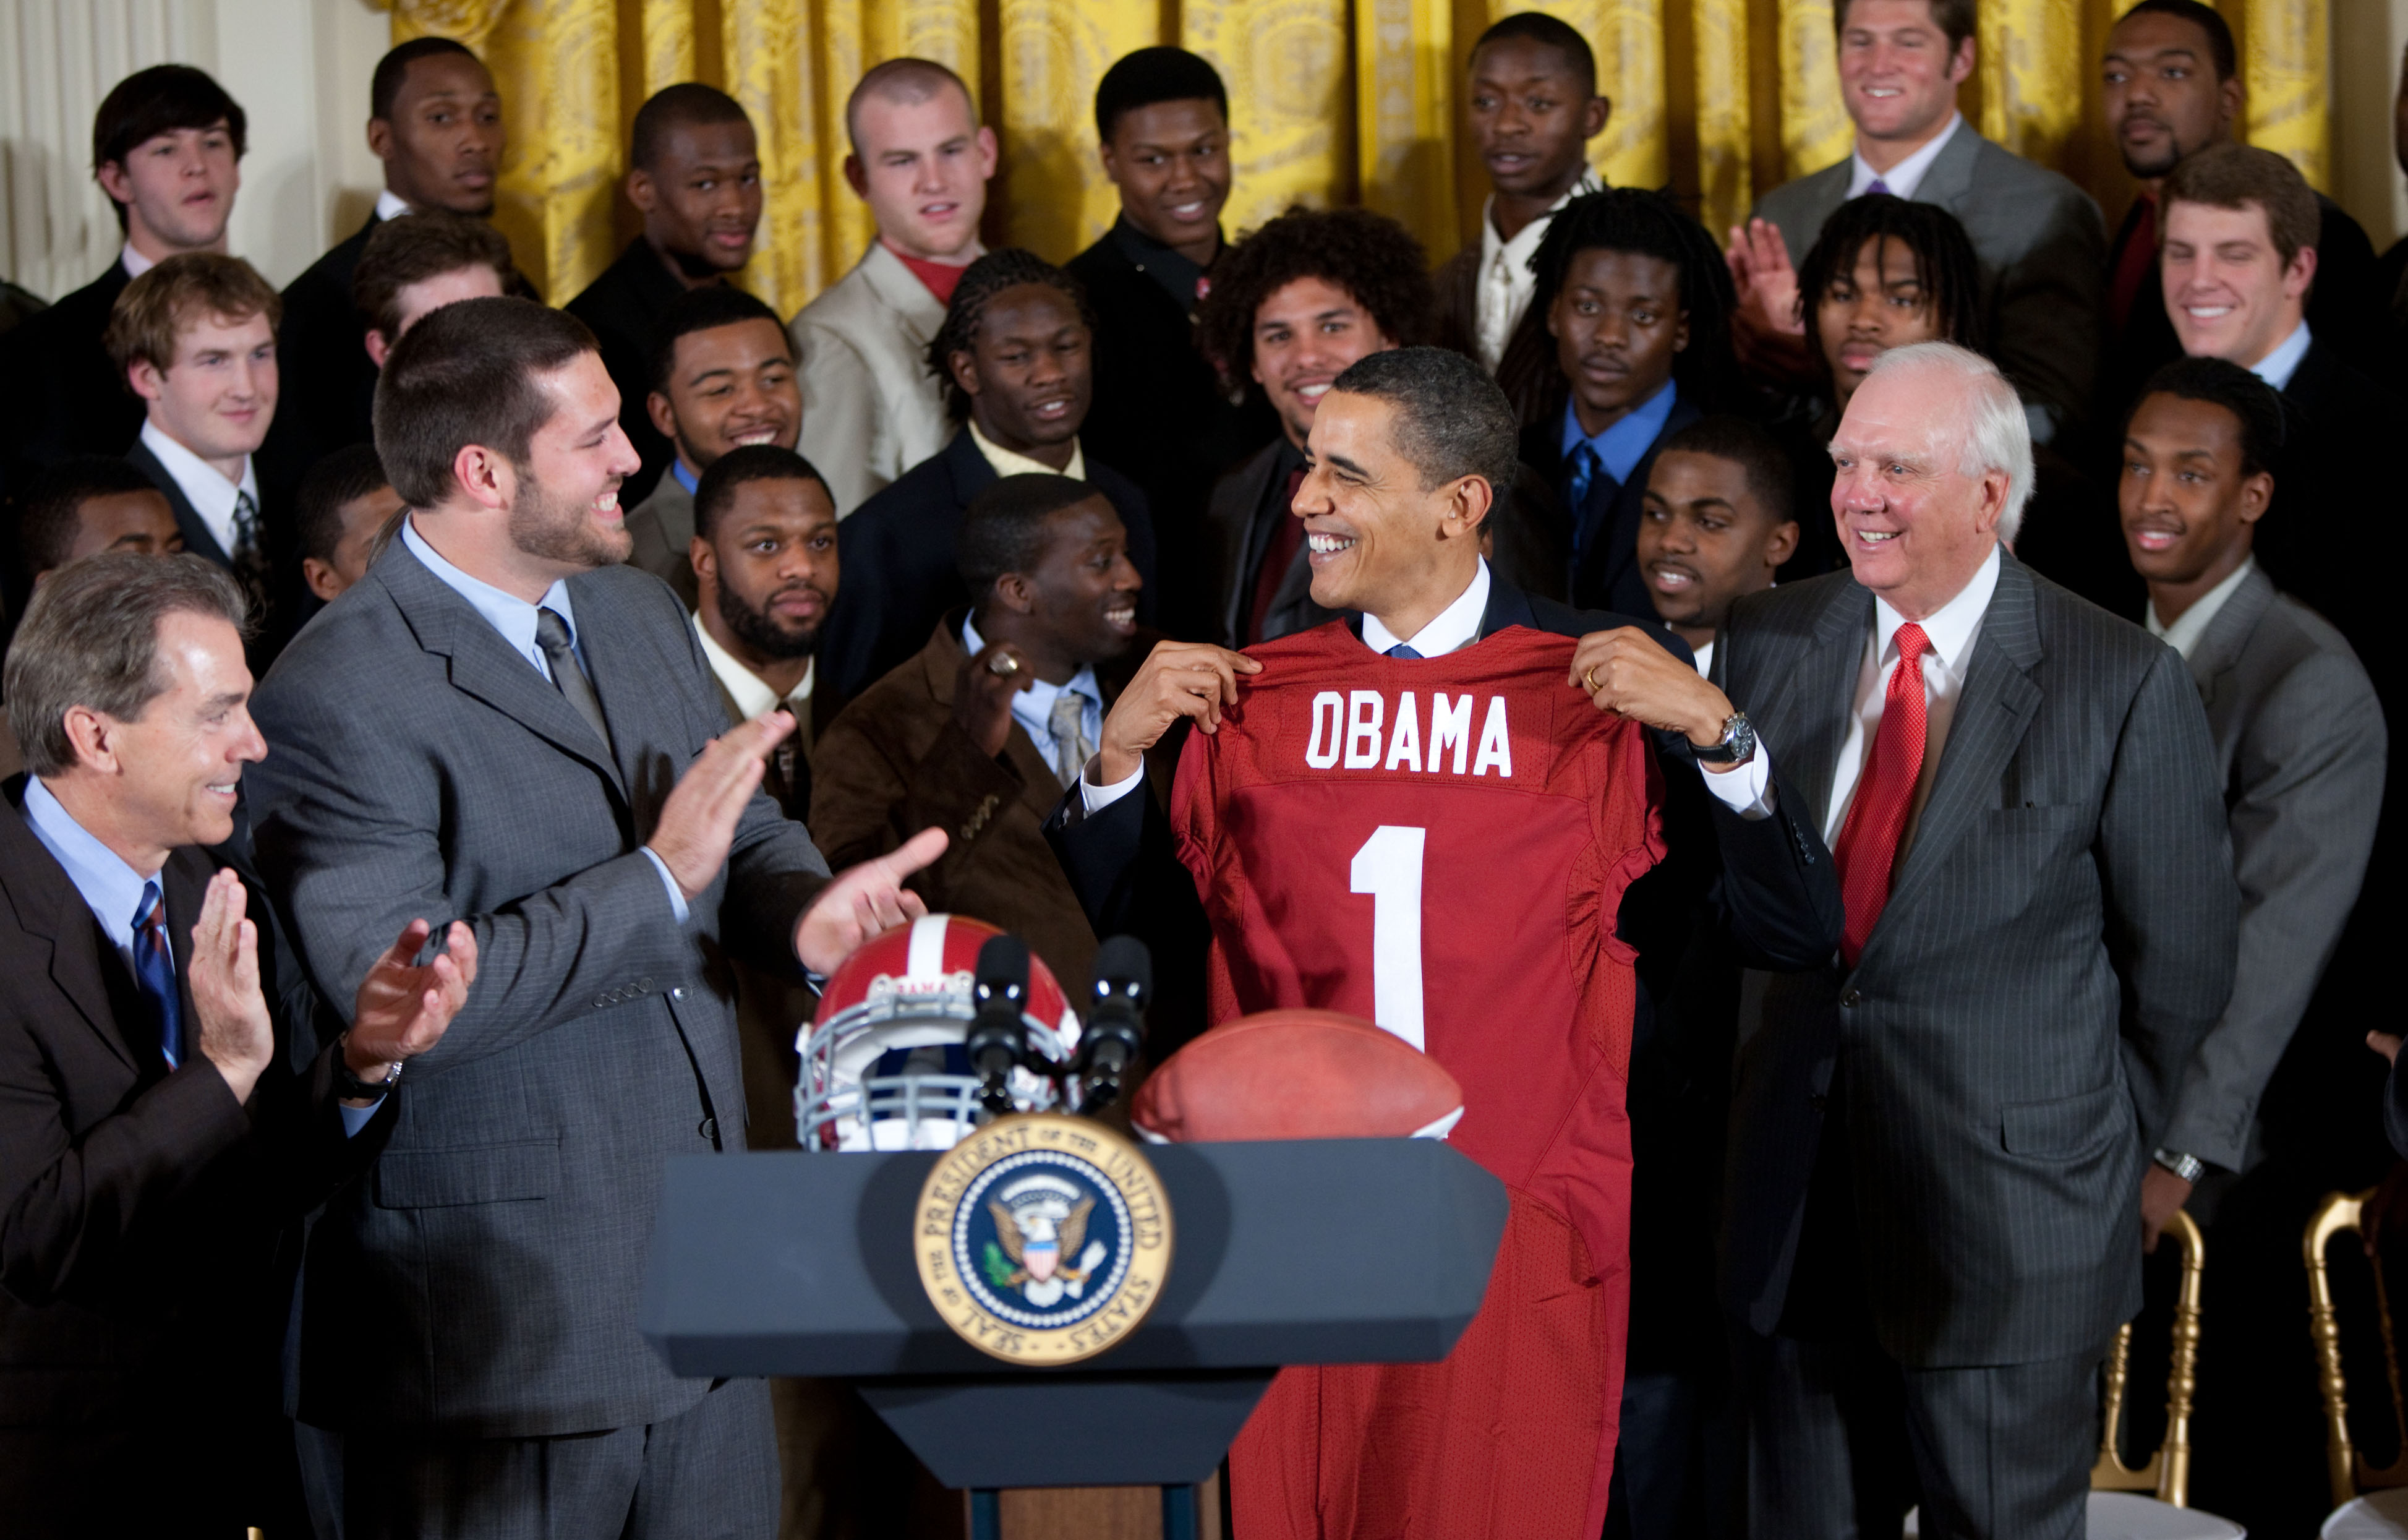 President Barack Obama smiles as he is presented with a University of Alabama football jersey